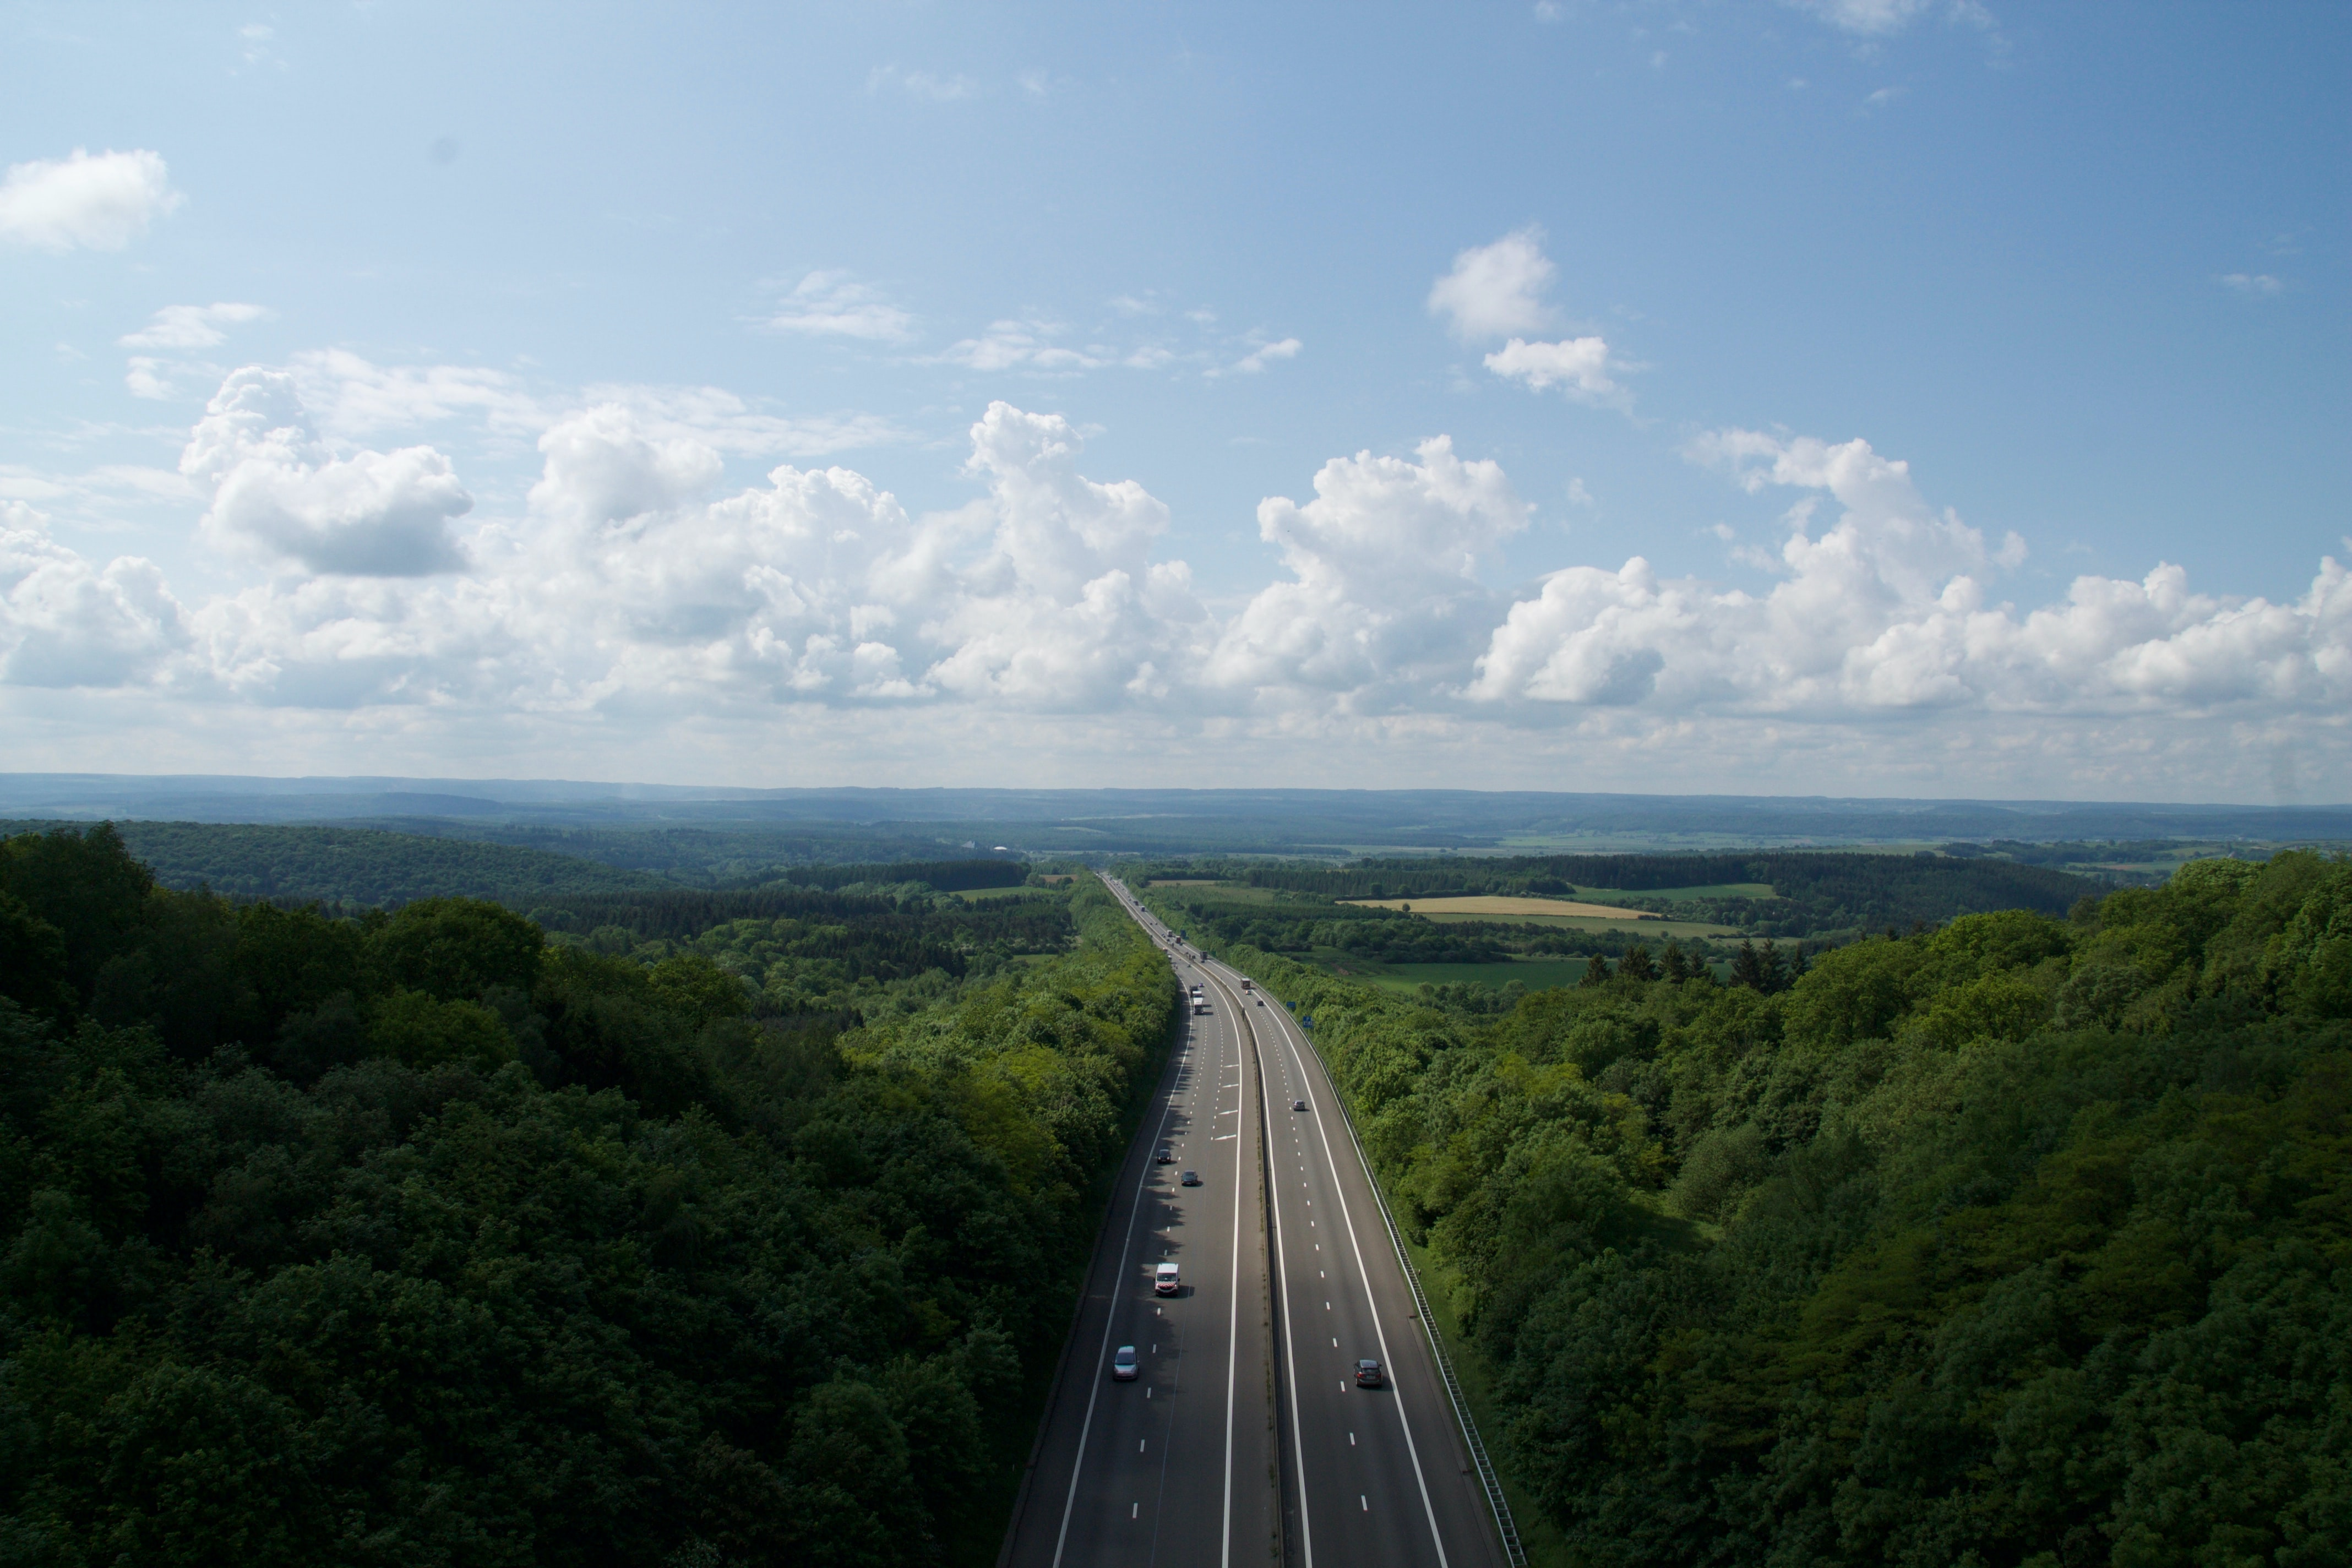 Aerial drone shot of a countryside highway on a bright blue day